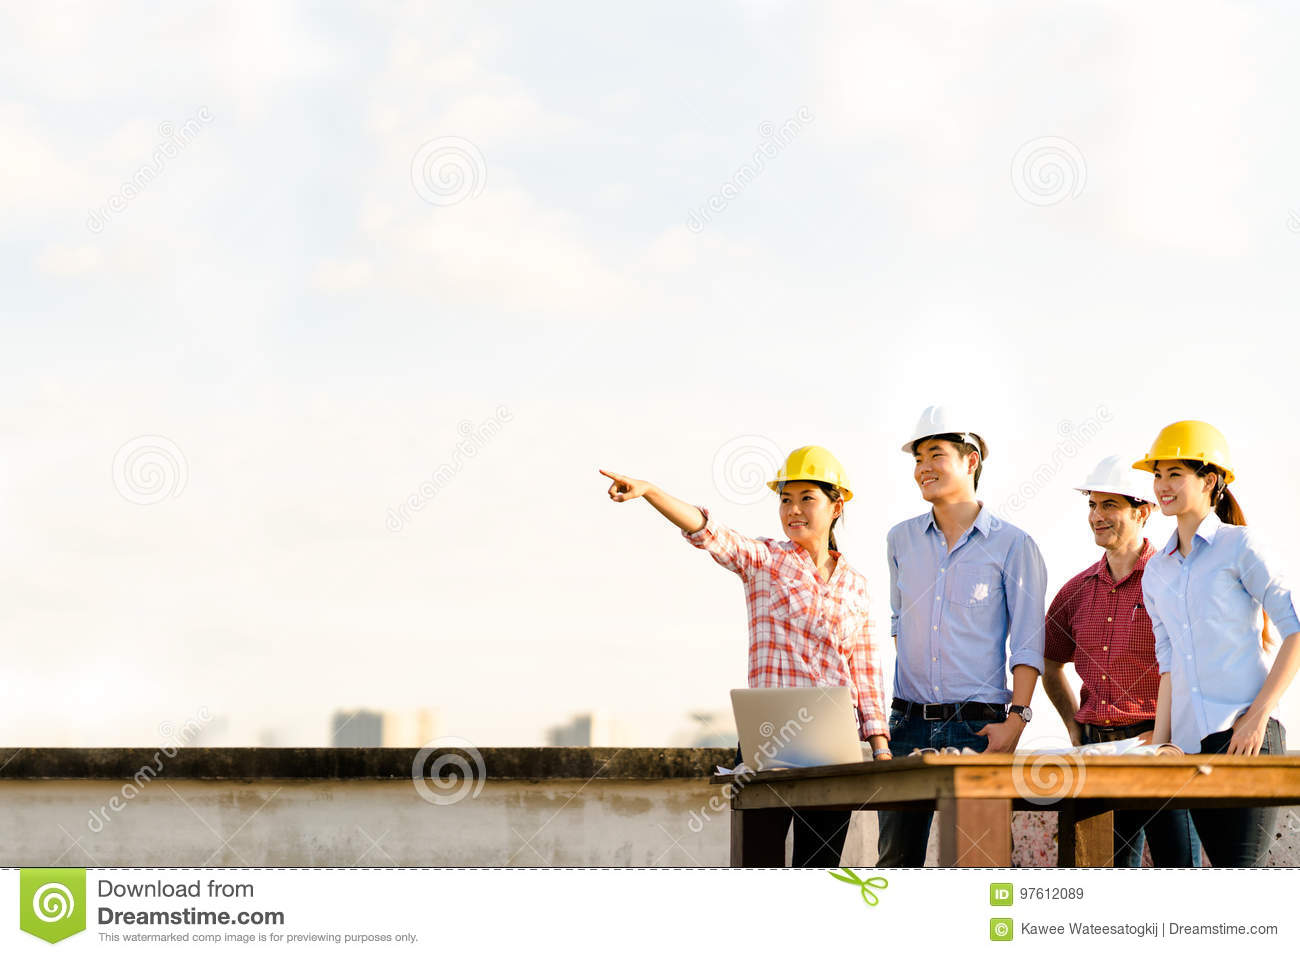 Multiethnic diverse group of engineers or business partners at construction site, pointing toward copy space on sky during sunset